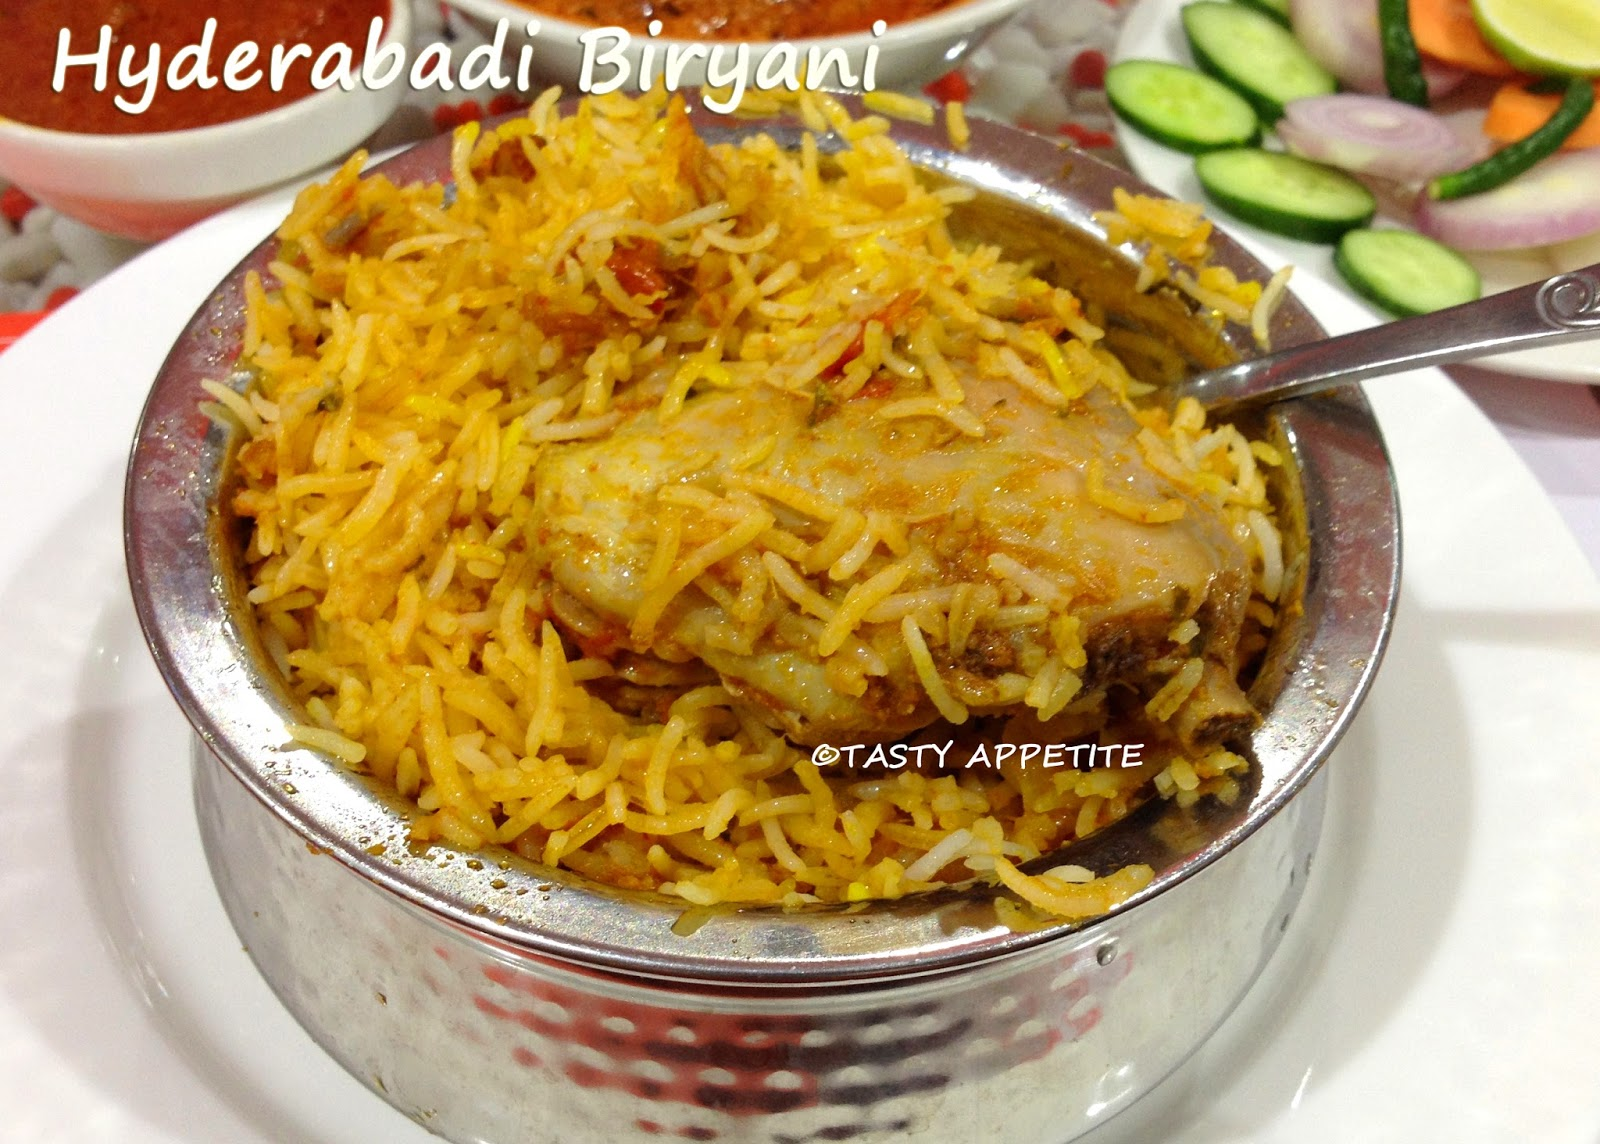 Hyderabadi chicken dum biryani recipe hyderabadi biryani spicy hyderabadi chicken dum biryani recipe hyderabadi biryani spicy biryani recipes forumfinder Images